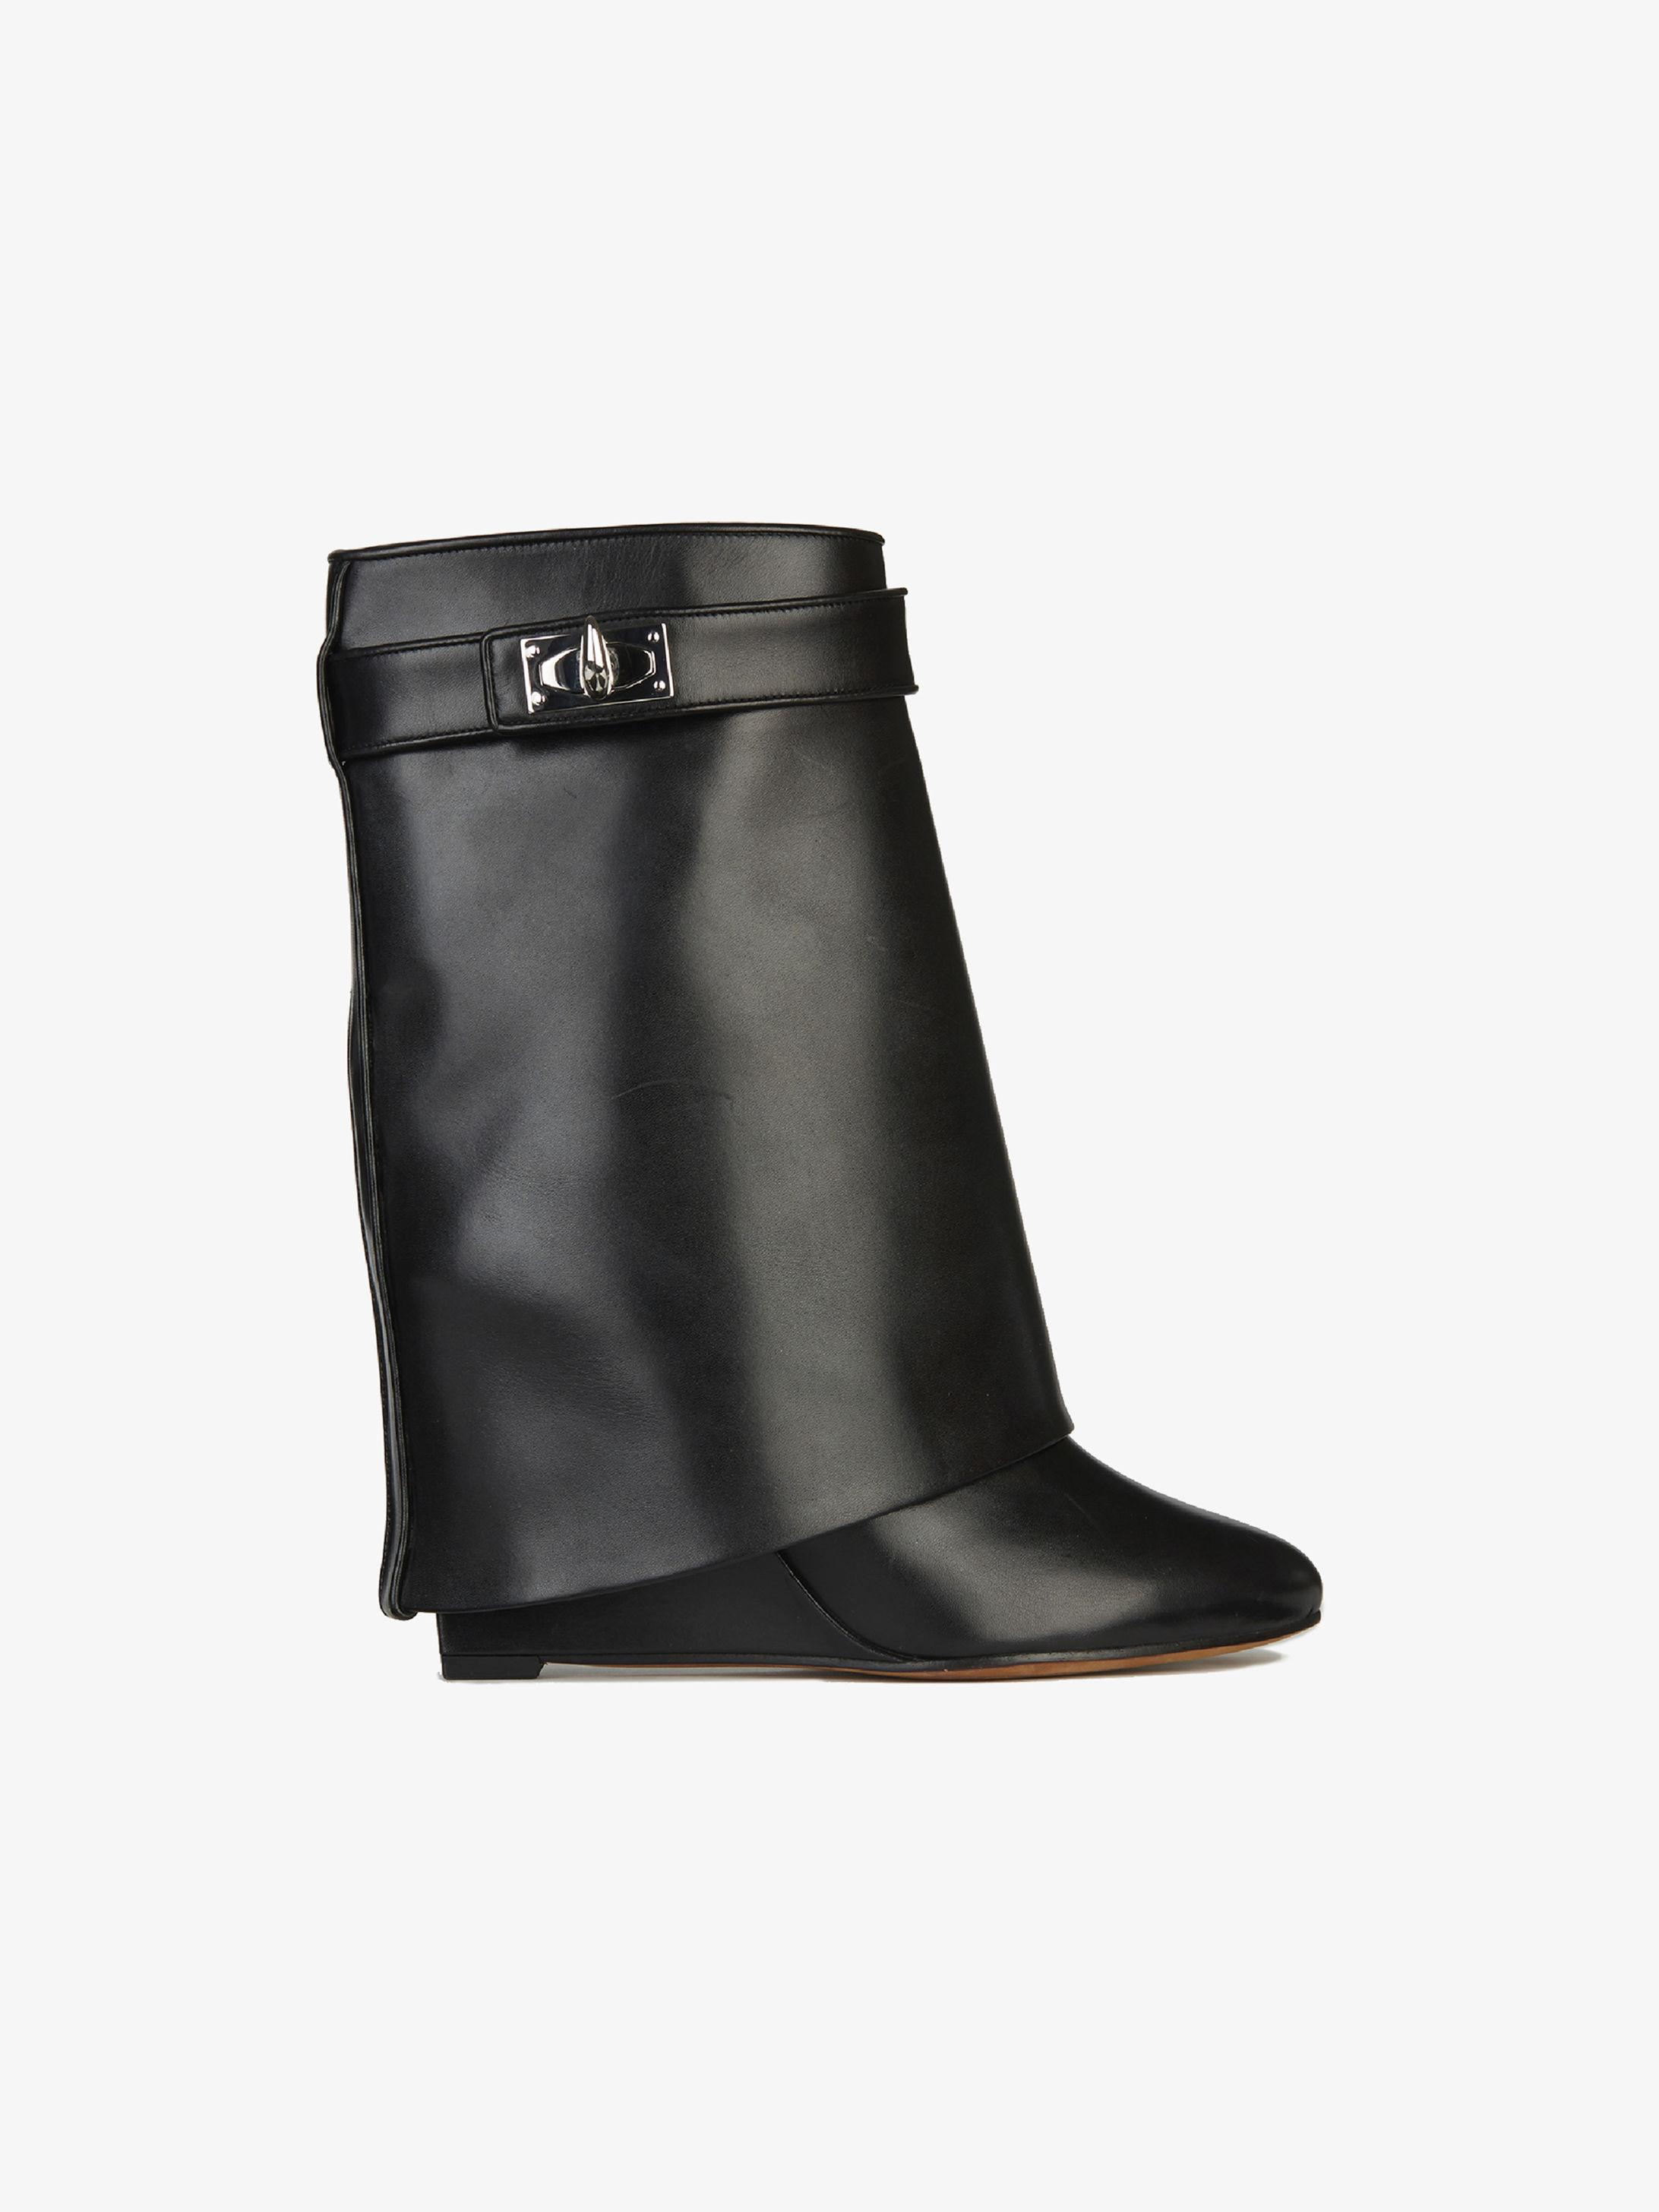 2018 Leather Flat Leather Wedge With Pointed Horn Buckle Inside Increased  Female Middle Boots Large Size Shoes Cowgirl Boots Wide Calf Boots From  Xiangyu523 ... 3d09db23ead